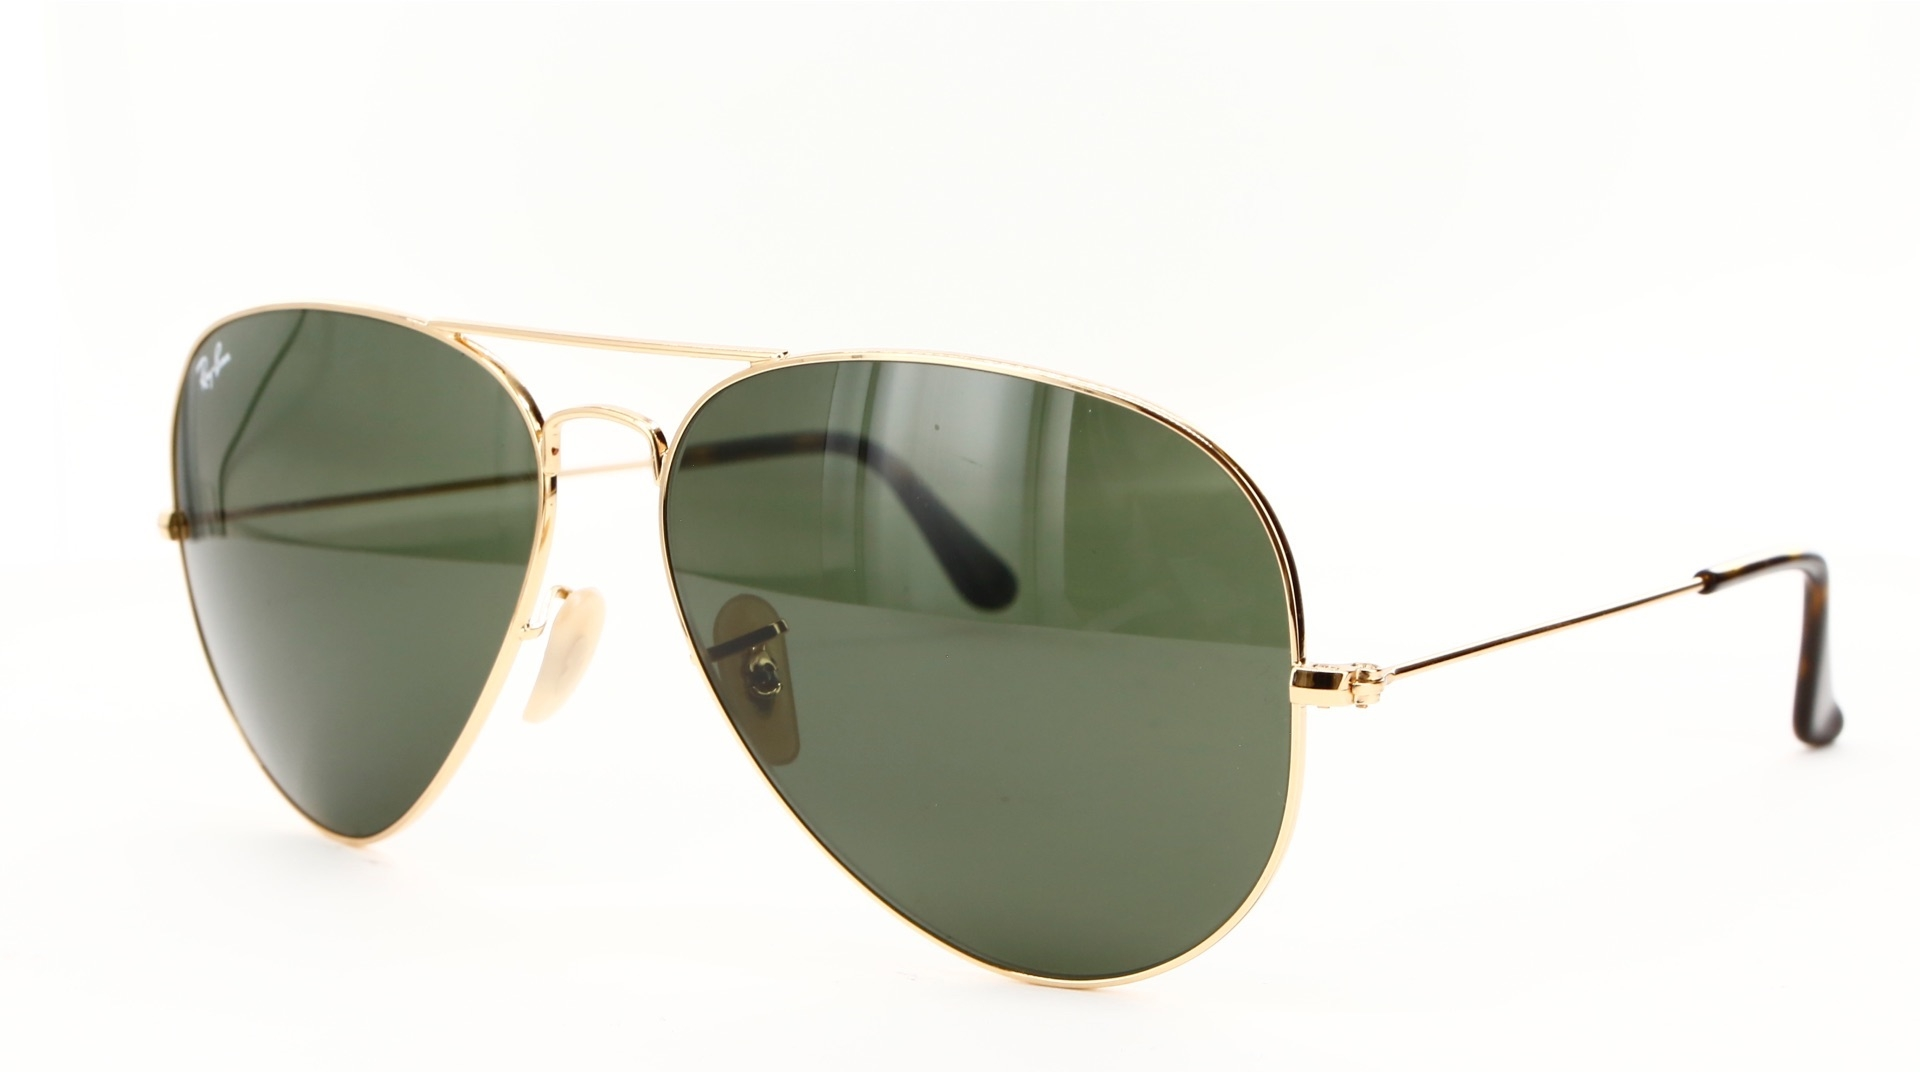 Ray-Ban - ref: 50190